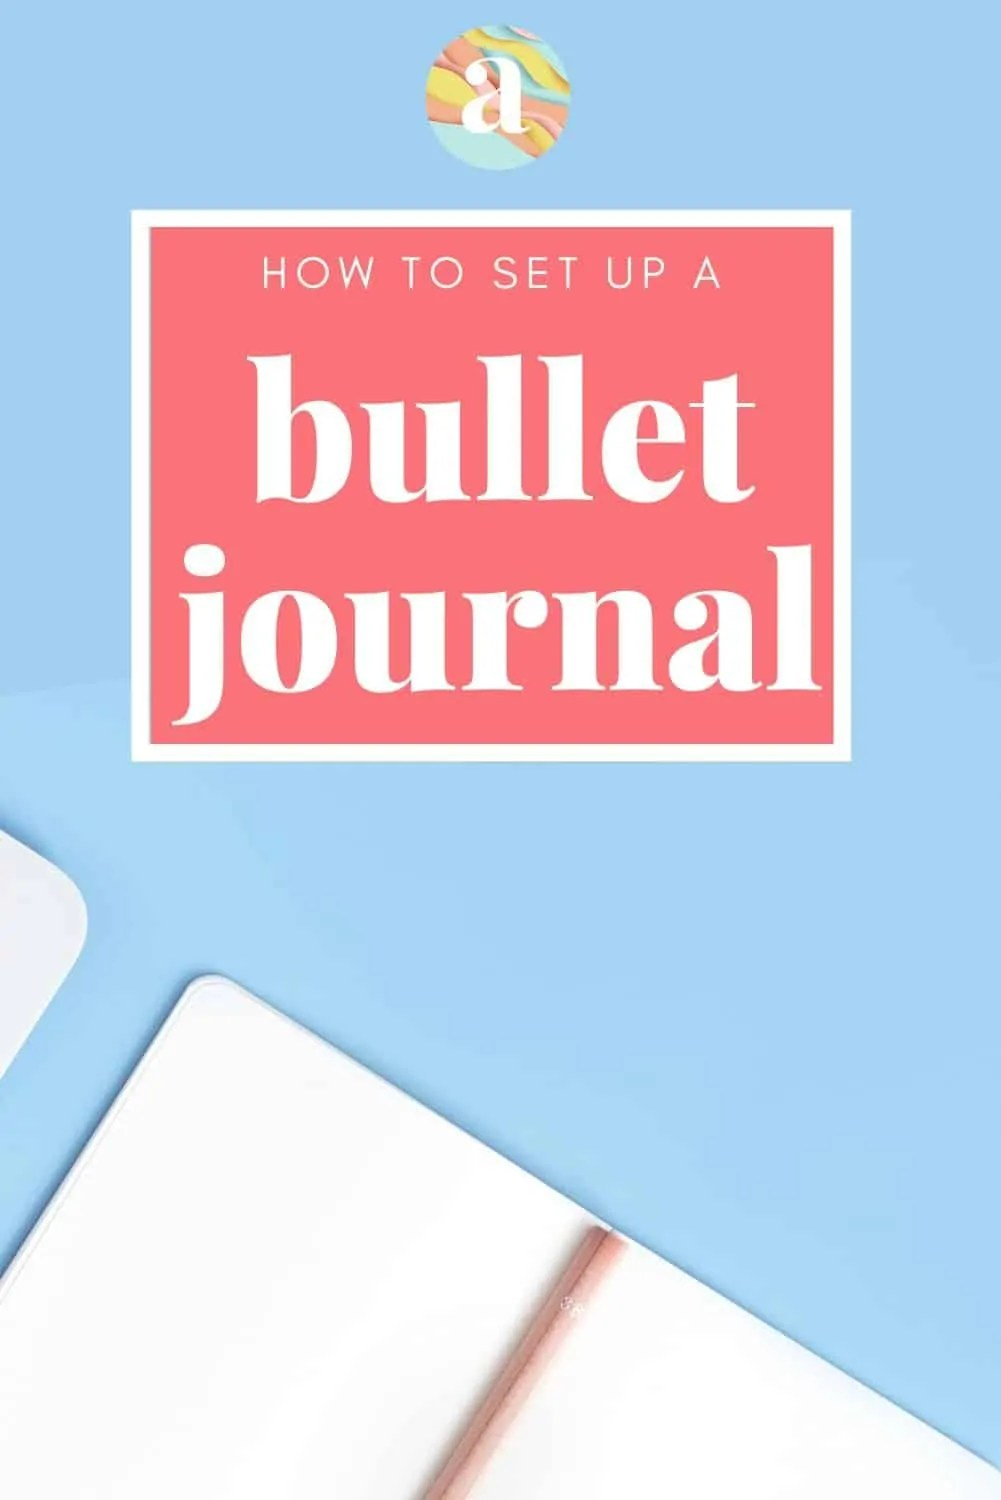 How to set up Bullet Journal - Honest Review of Brainbook 11